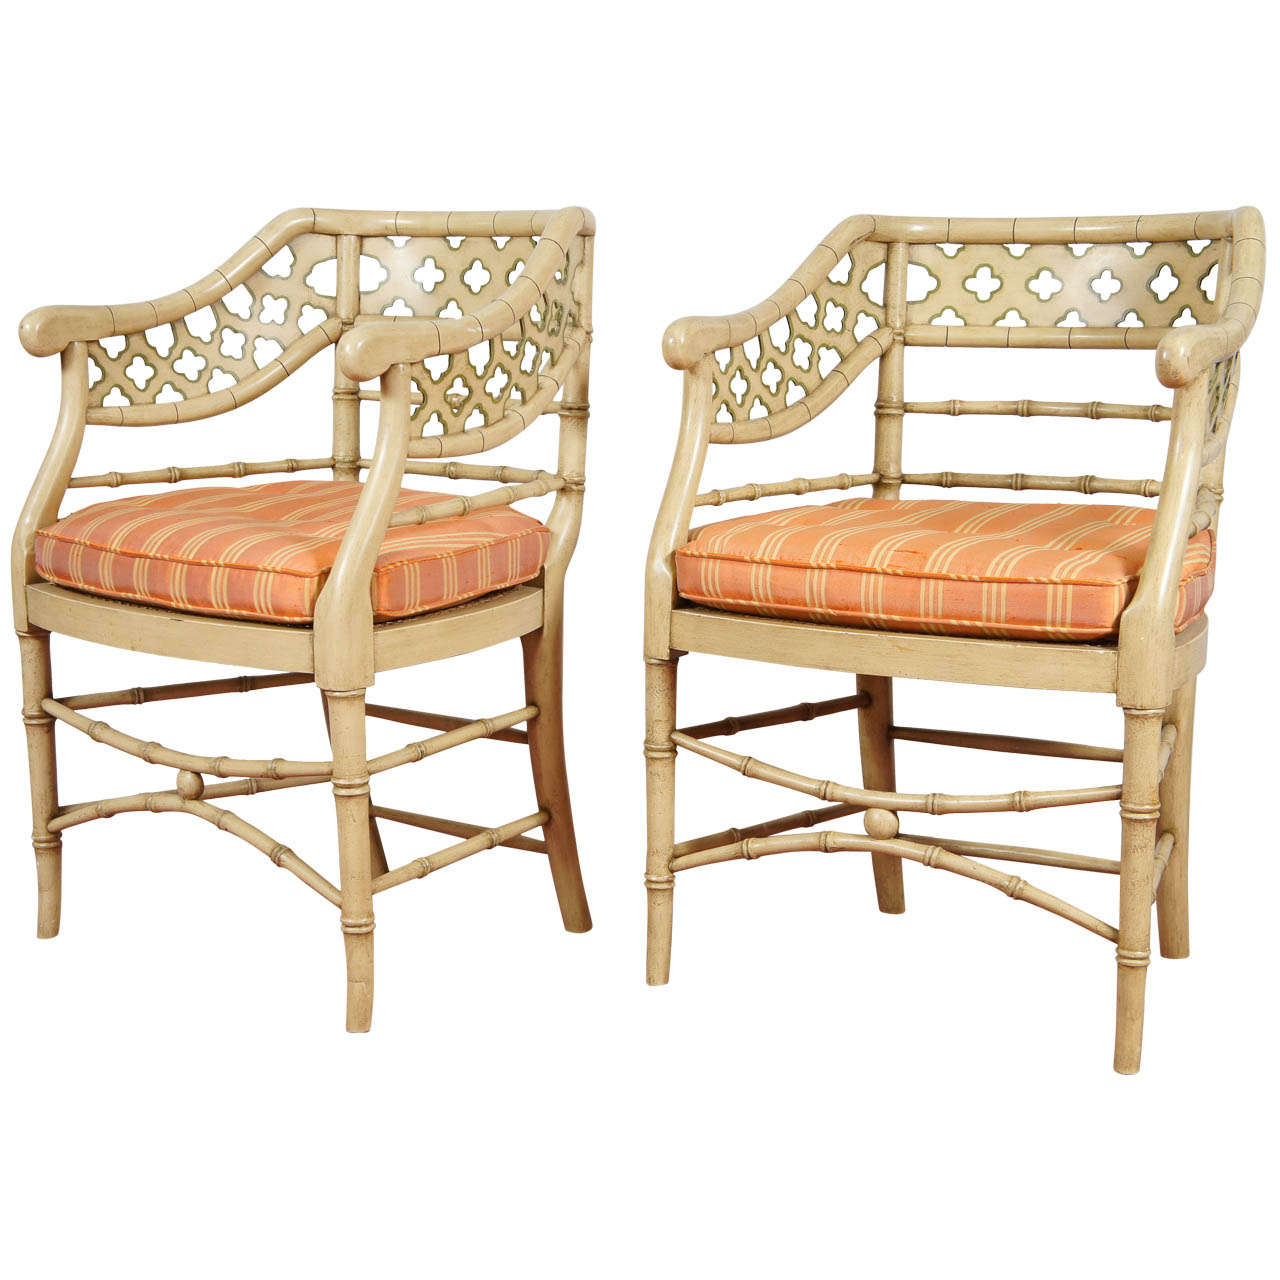 Regency Style Faux Bamboo Painted Chairs Pair At 1stdibs